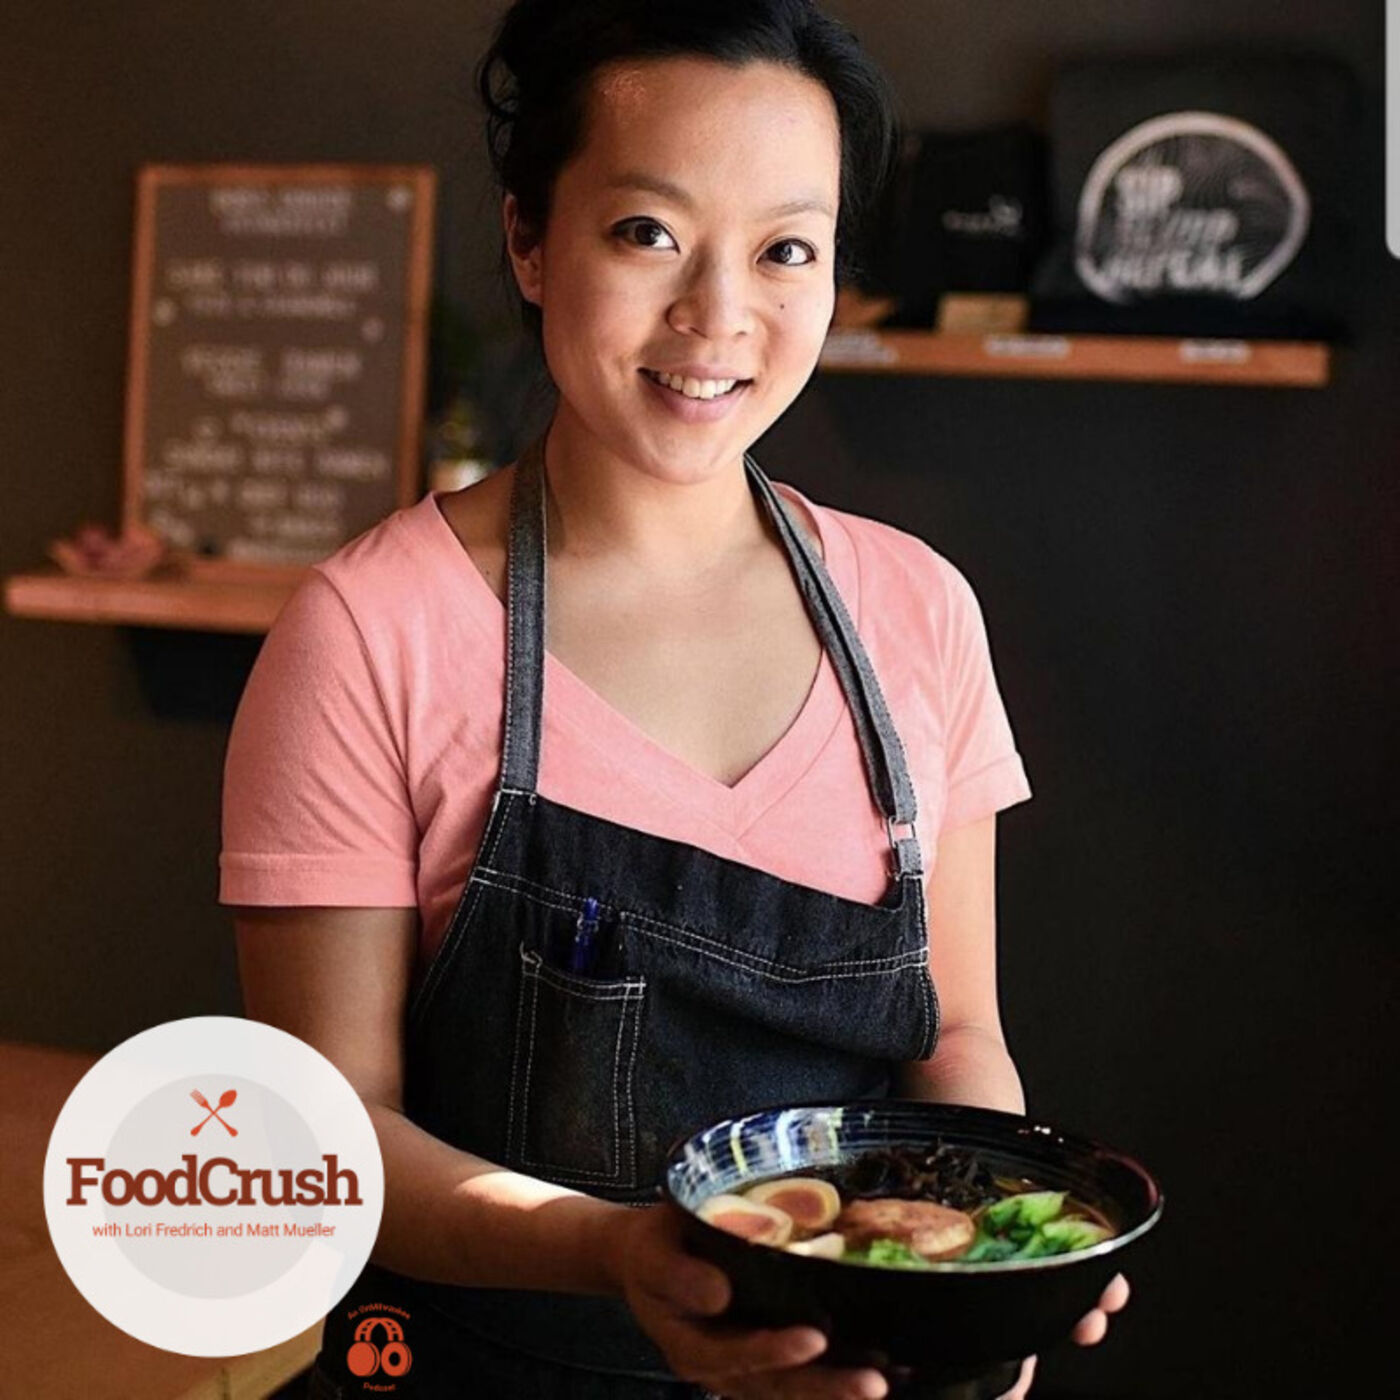 Community, advocacy & change: A conversation with Chef Francesca Hong